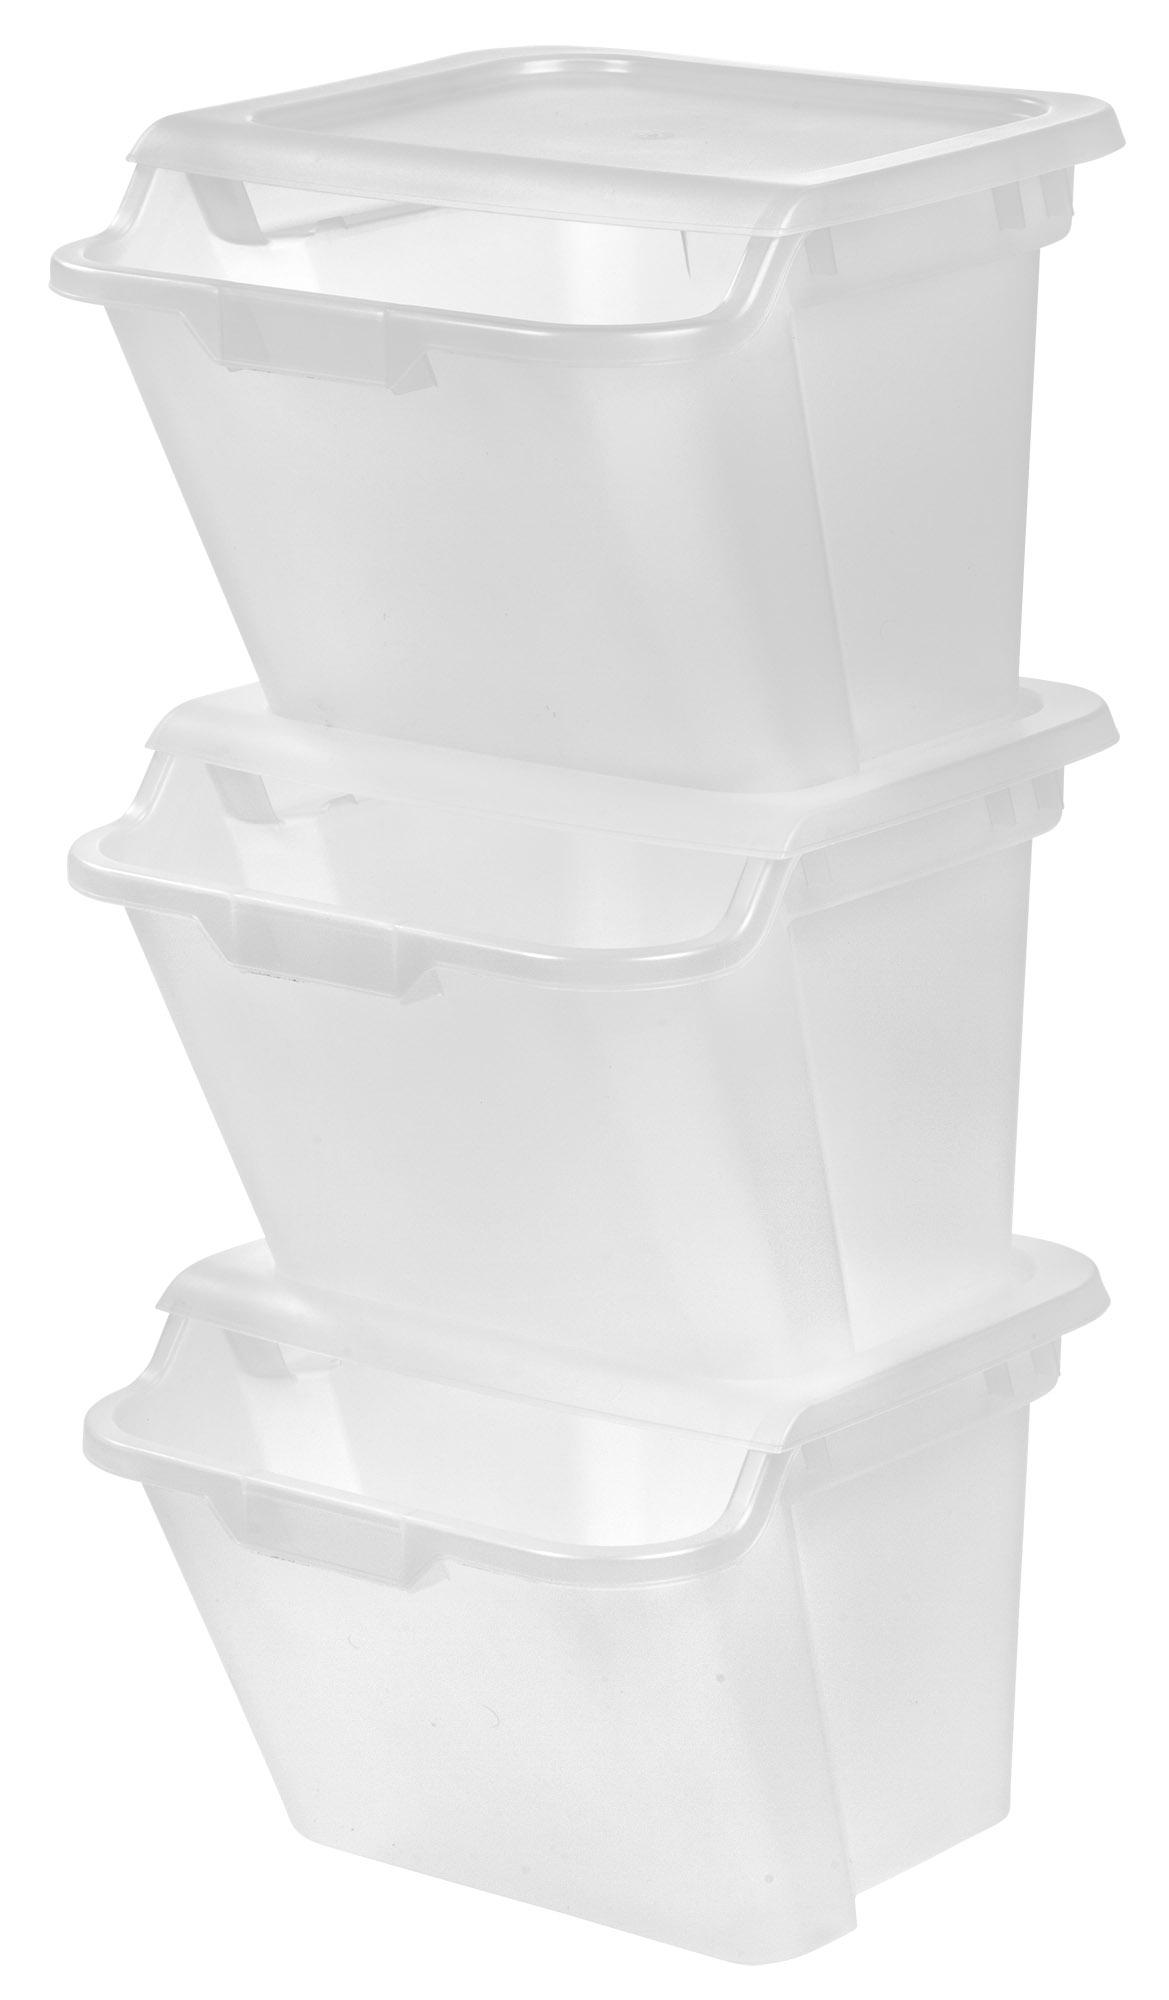 Amazon.com: IRIS 41.5 Quart Recycle Storage Bin, 3 Pack, Clear ...